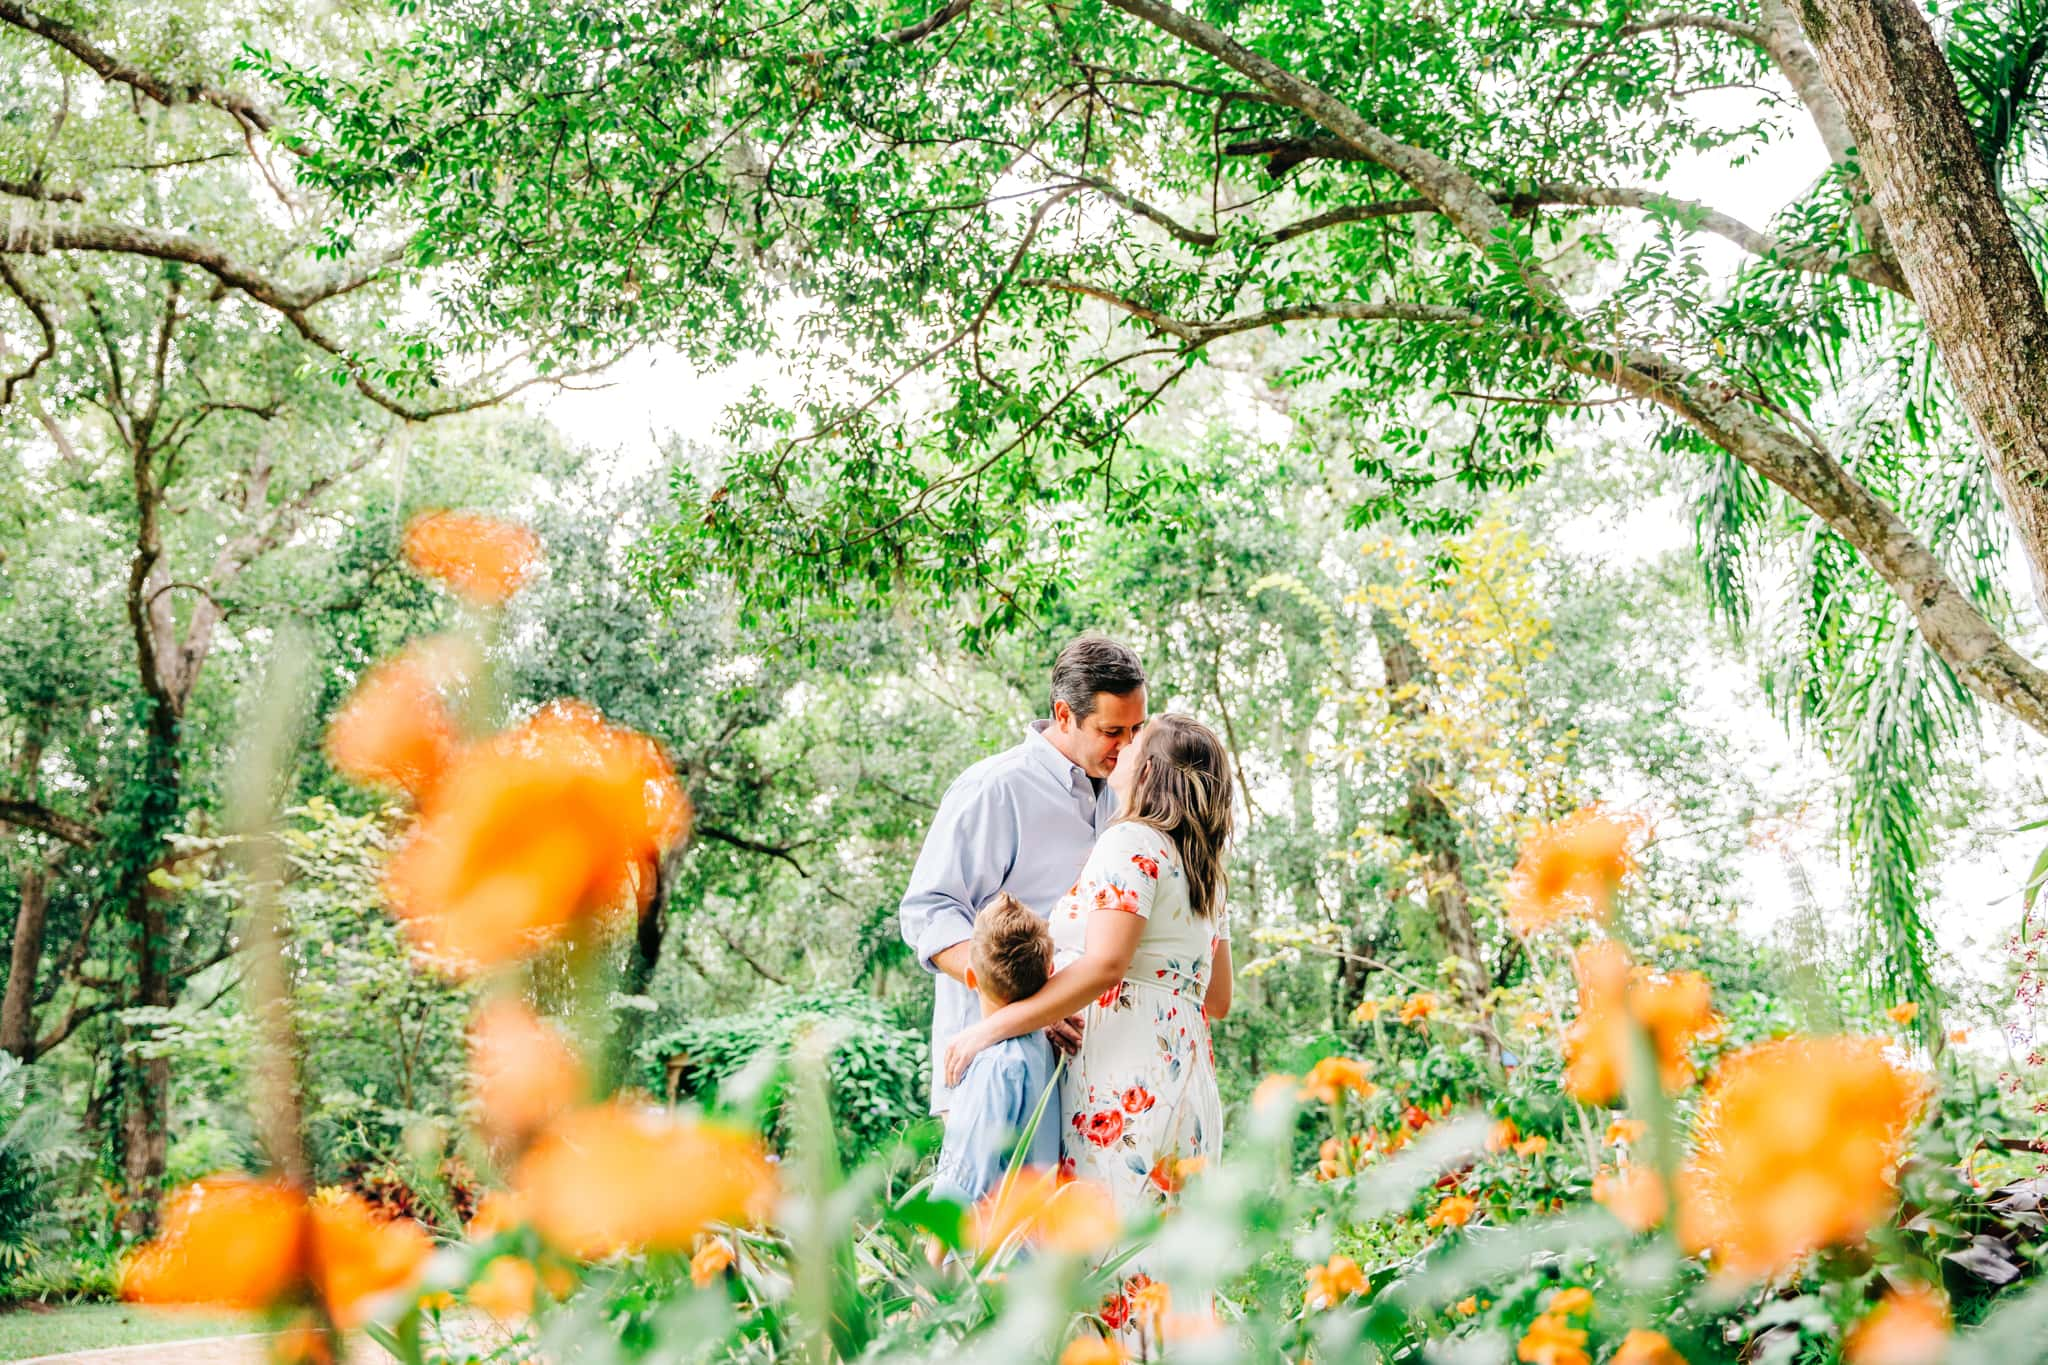 pregnant woman kissing husband in mead gardens while being hugged by their small son